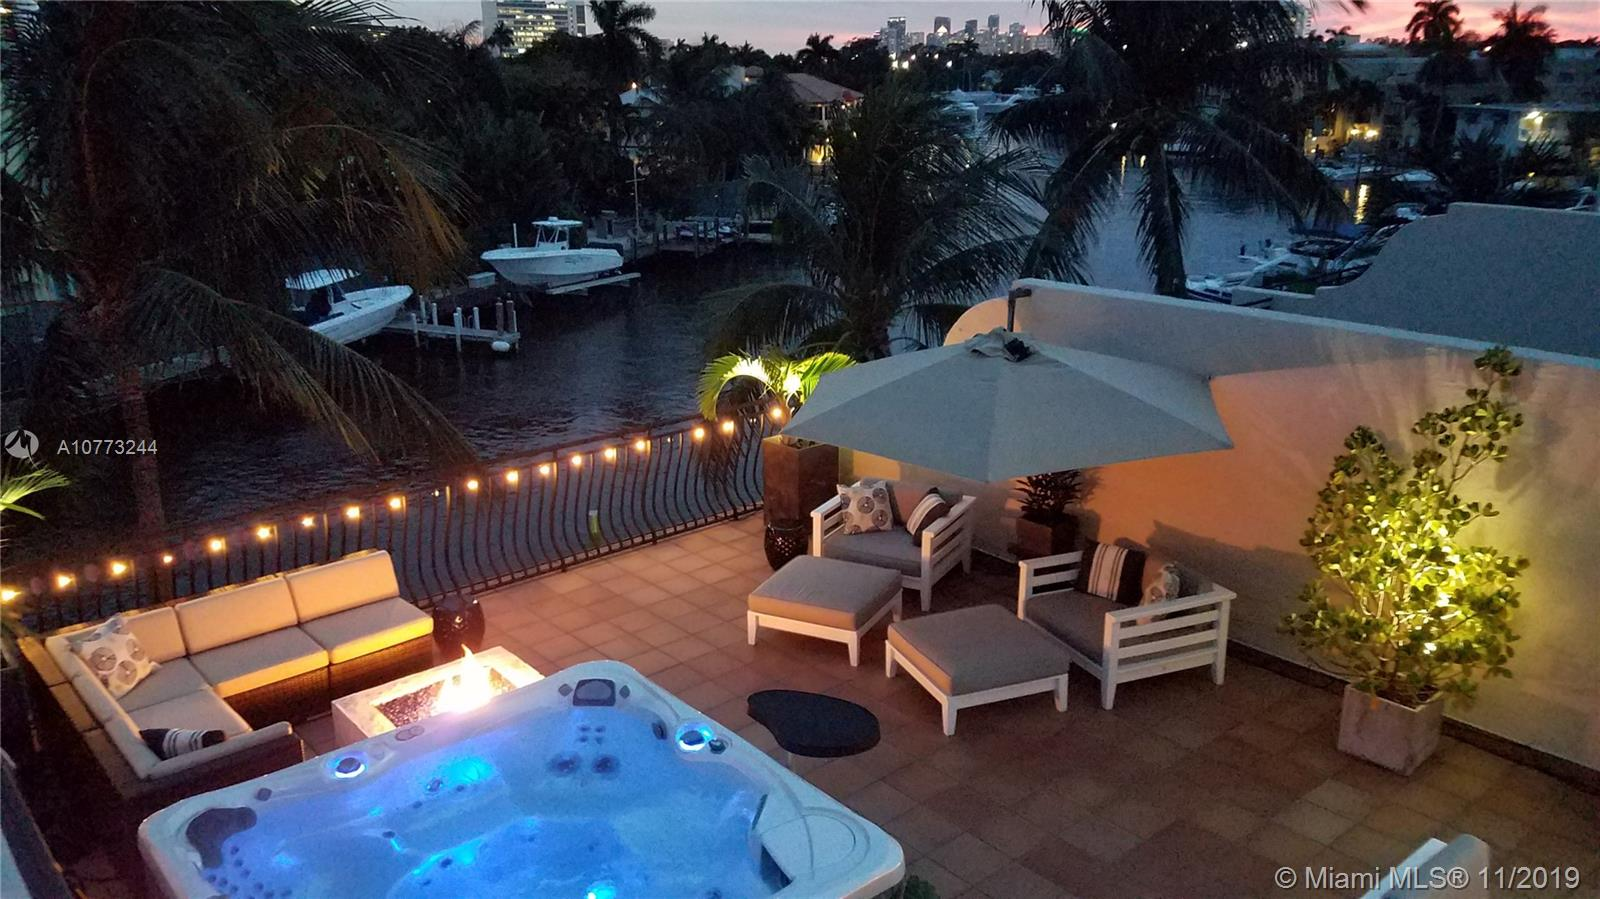 CORAL RIDGE WATERFRONT townhome with assigned boat slip up to 34' ft (50 amp power/water) on deep water canal right off intercostal waterway, no fixed bridges. Beautifully appointed, (3,415 sq ft) 3BD/2BA+2 half baths, master suite/bedroom w/balconies. Marble master bath w/whirlpool tub, separate shower. Impact windows/doors. Spectacular private rooftop terrace w/outdoor kitchen, dishwasher, ice maker & spa completely set up for outdoor living (ALL roof top and main floor outdoor furnishings, spa, tv's, plants, grills as shown are included). Fully furnished option available. 2 car garage. Backup electric generator incl. Whole house/outdoor Sonos/Bose stereo system incl. Smart home features. Custom made 23' foot long one of a kind Shakuff stairwell chandelier.